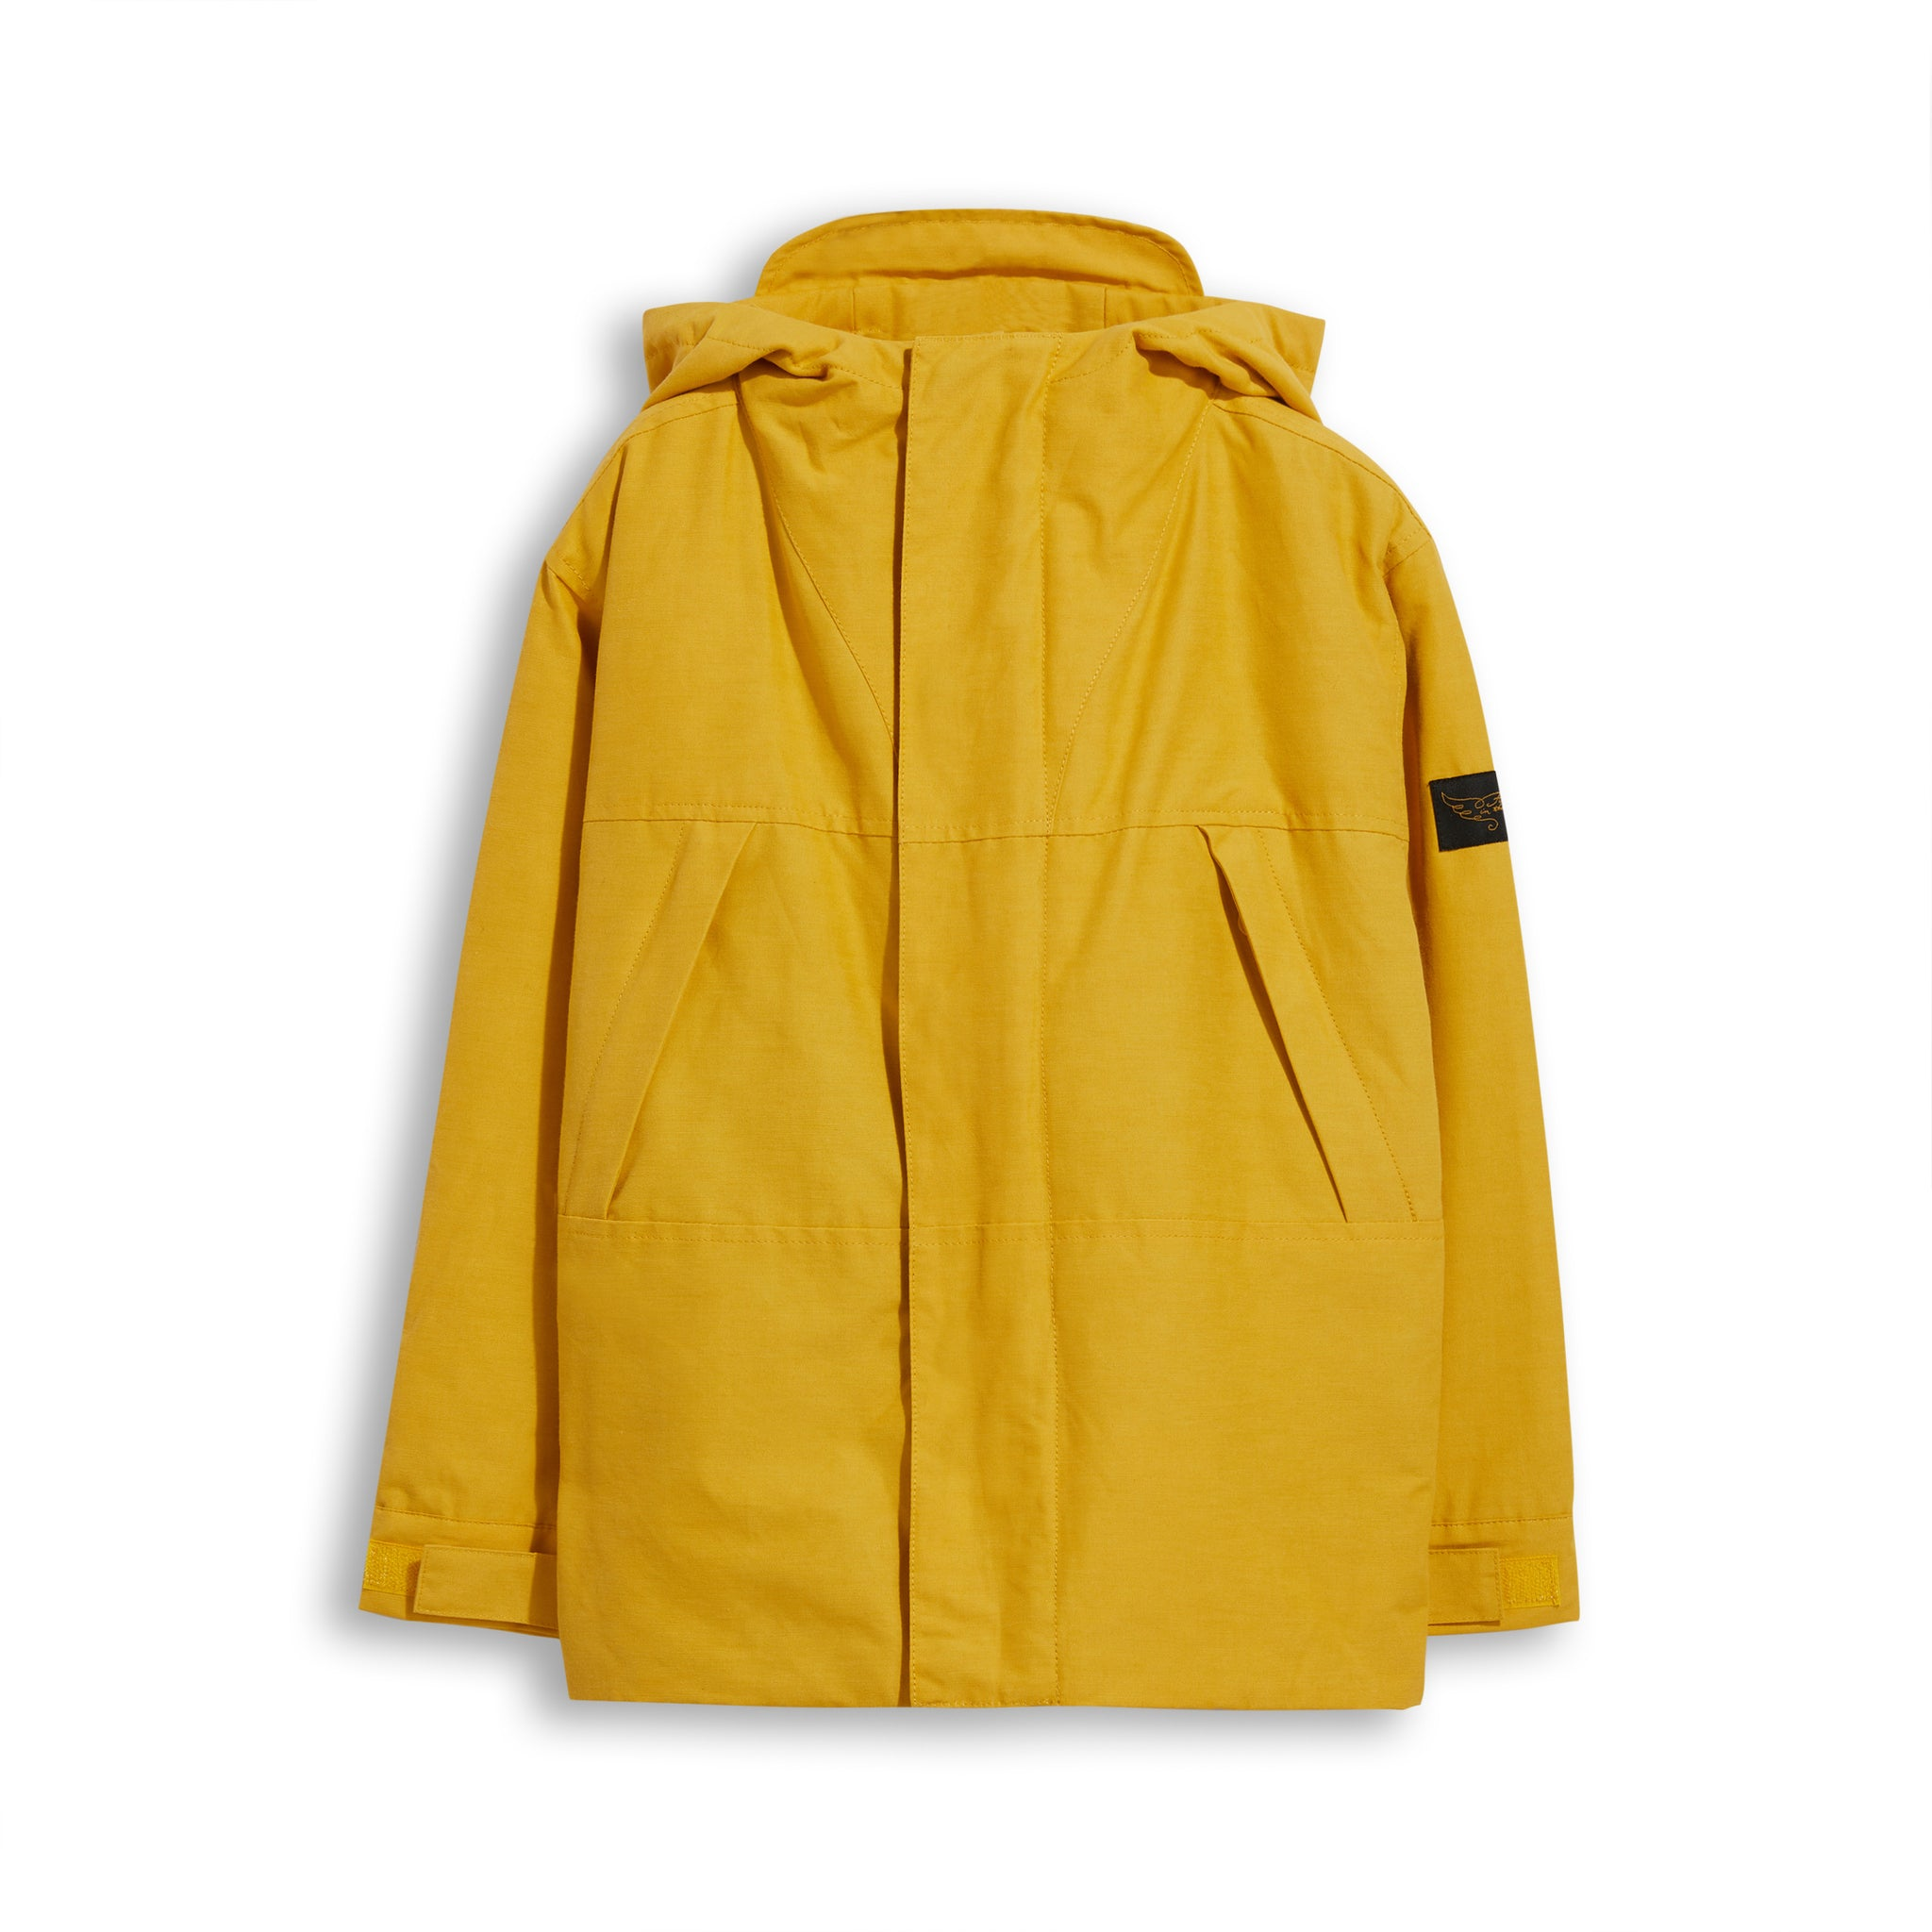 ZEPHYR Mustard -  Windbreaker Jacket 1